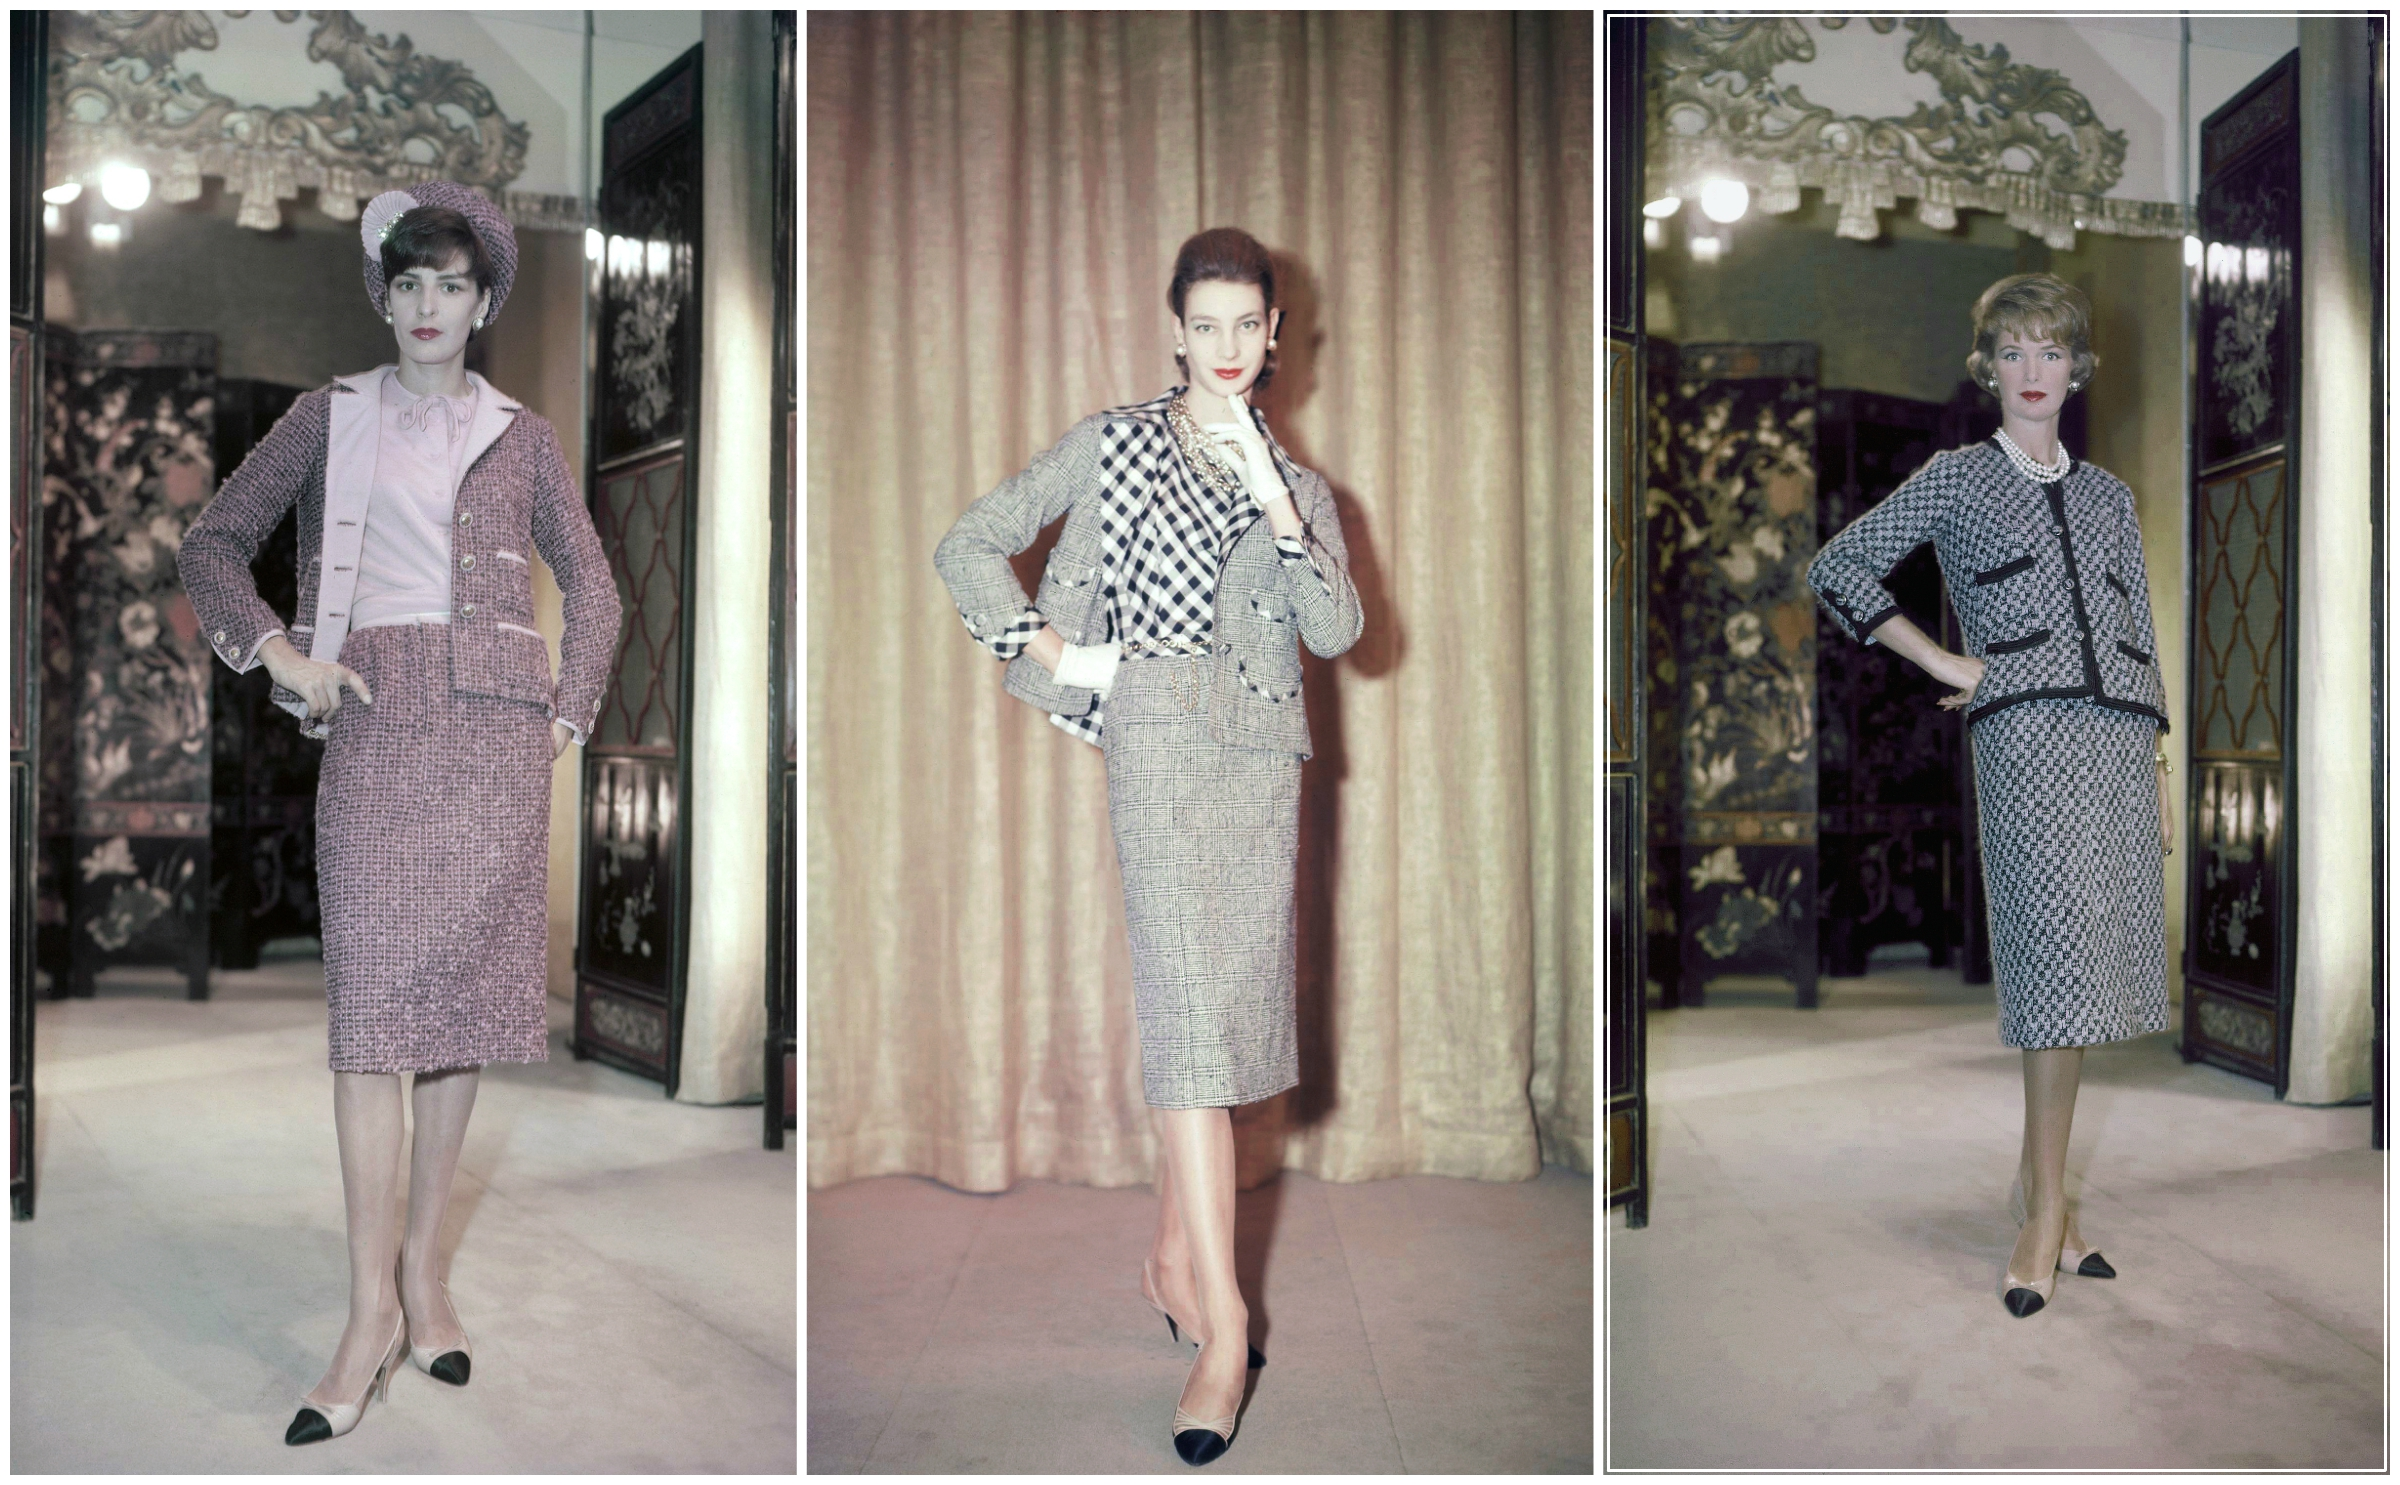 1959: Looks from Chanel's fall-winter collection that year.